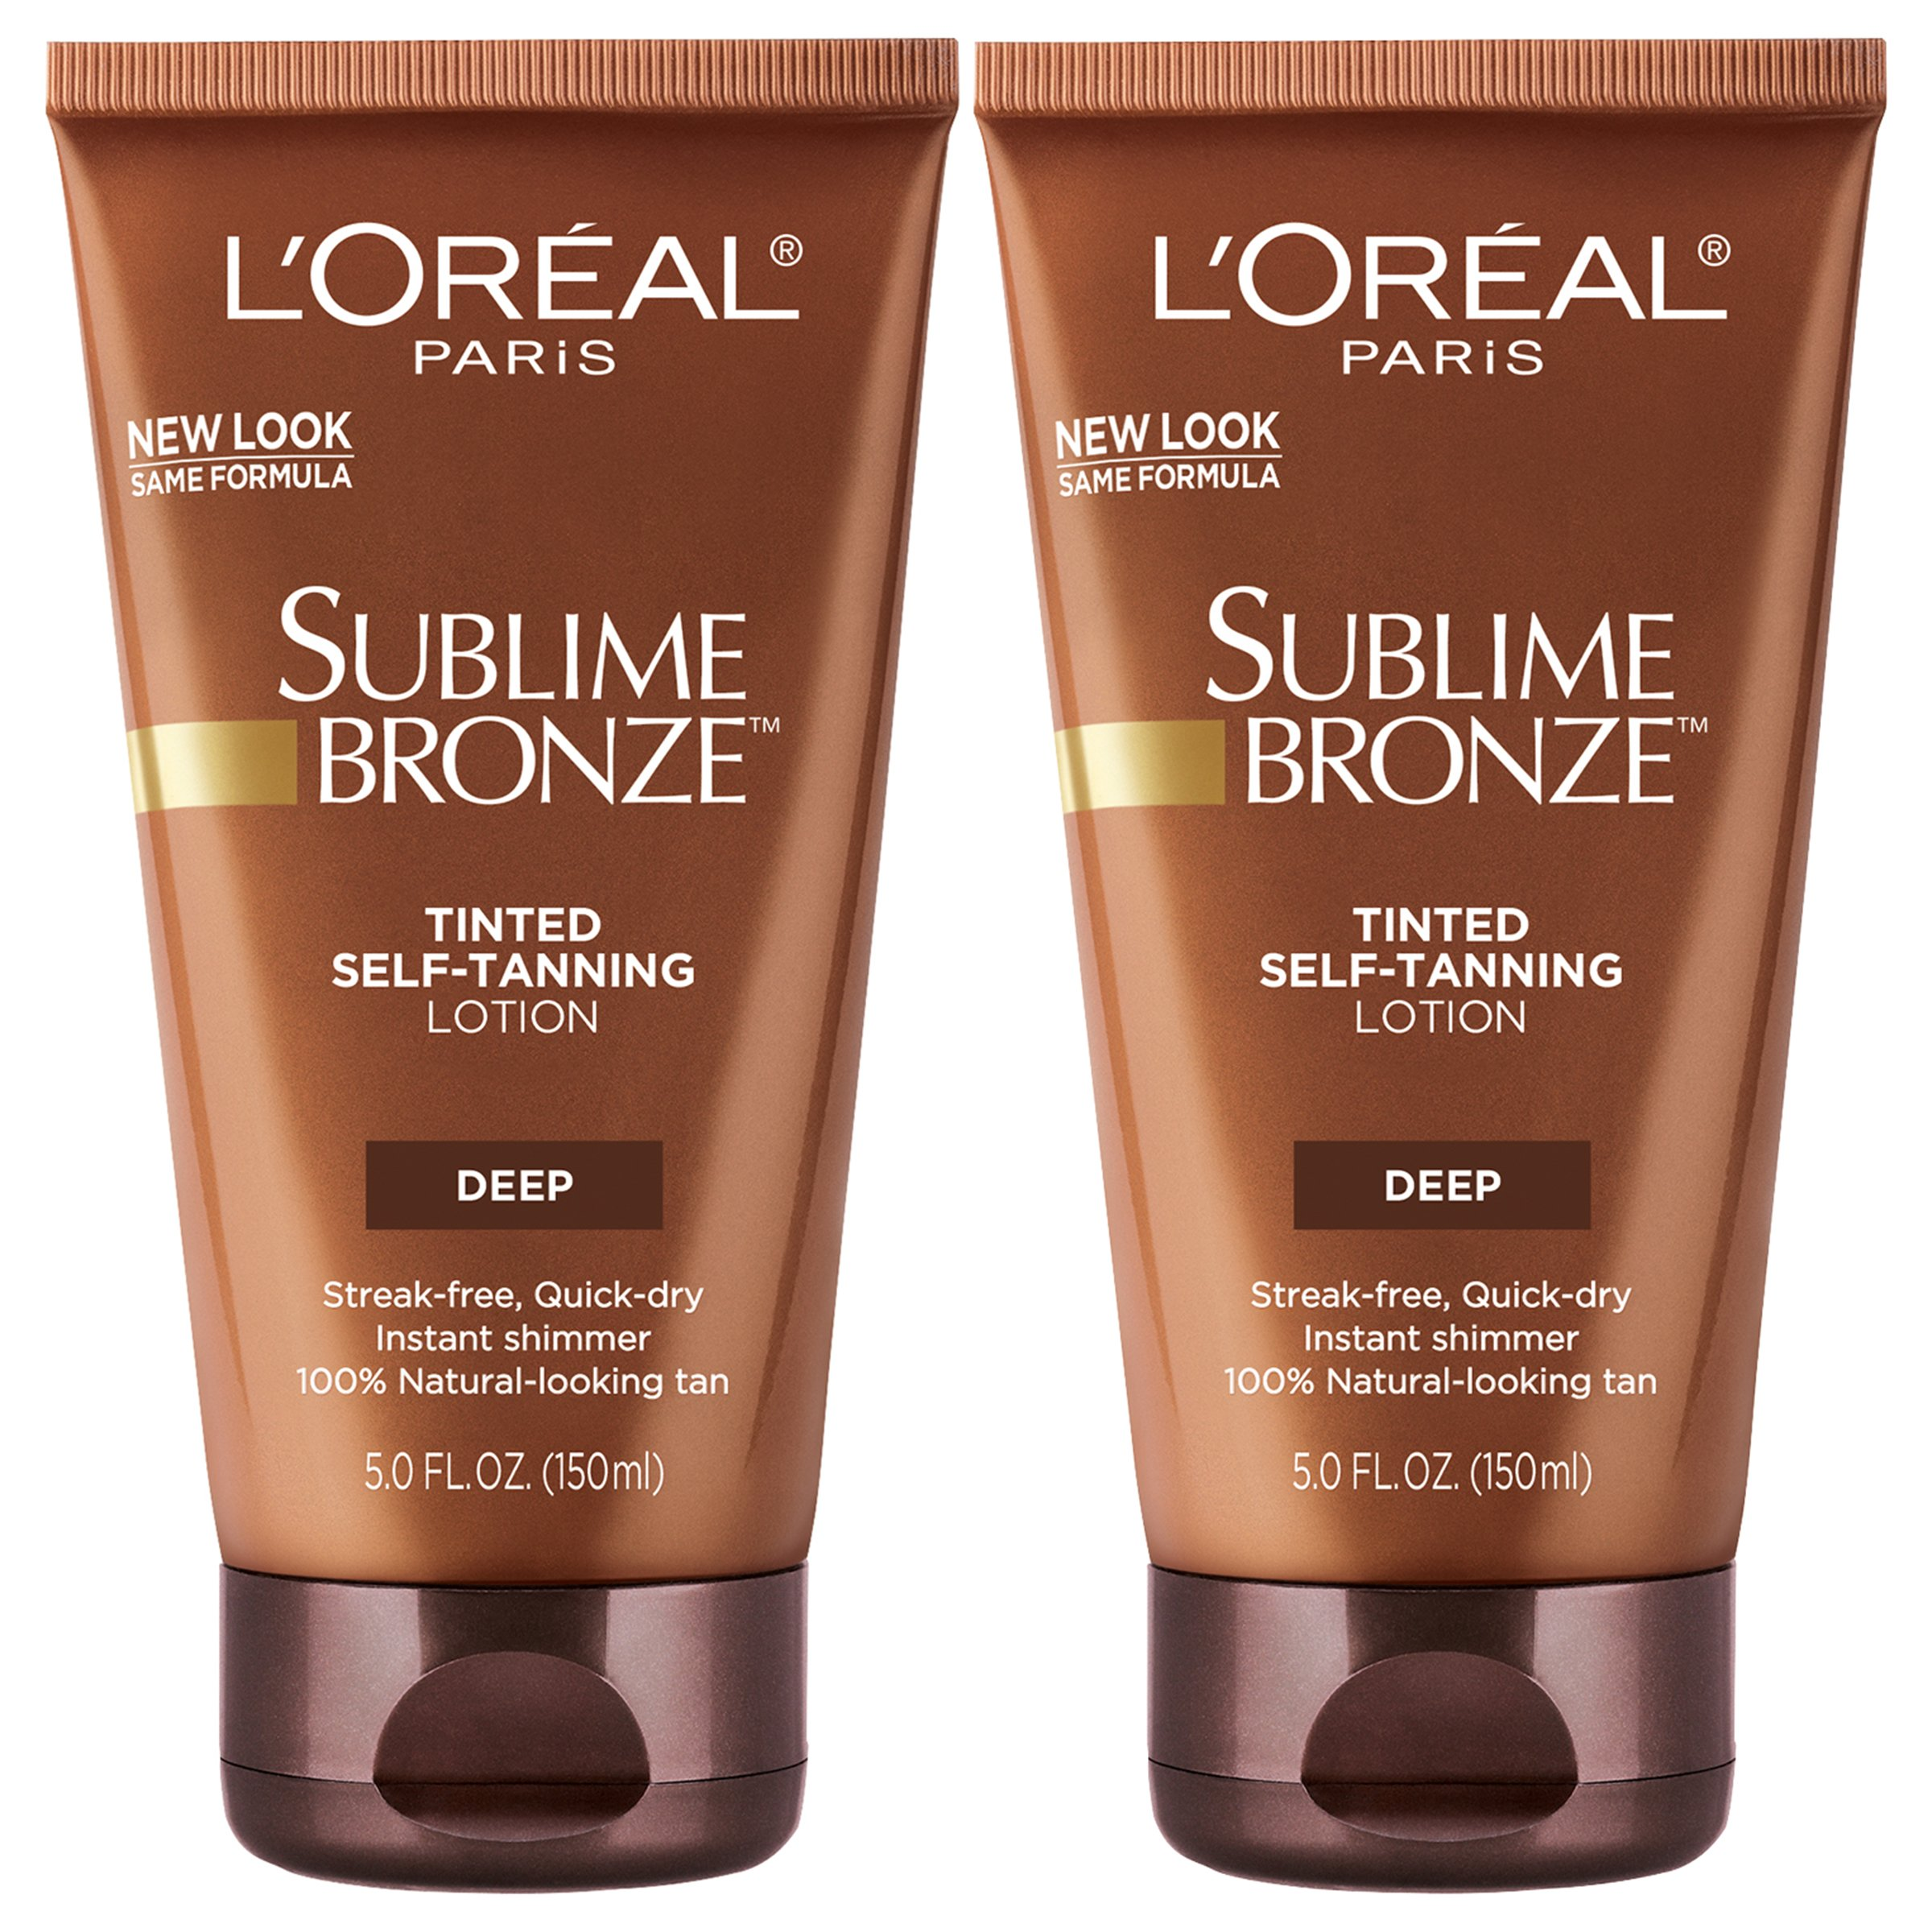 L'Oreal Paris Skin Care Sublime Bronze Tinted Self-Tanning Lotion, 10 Fluid Ounce by L'Oreal Paris